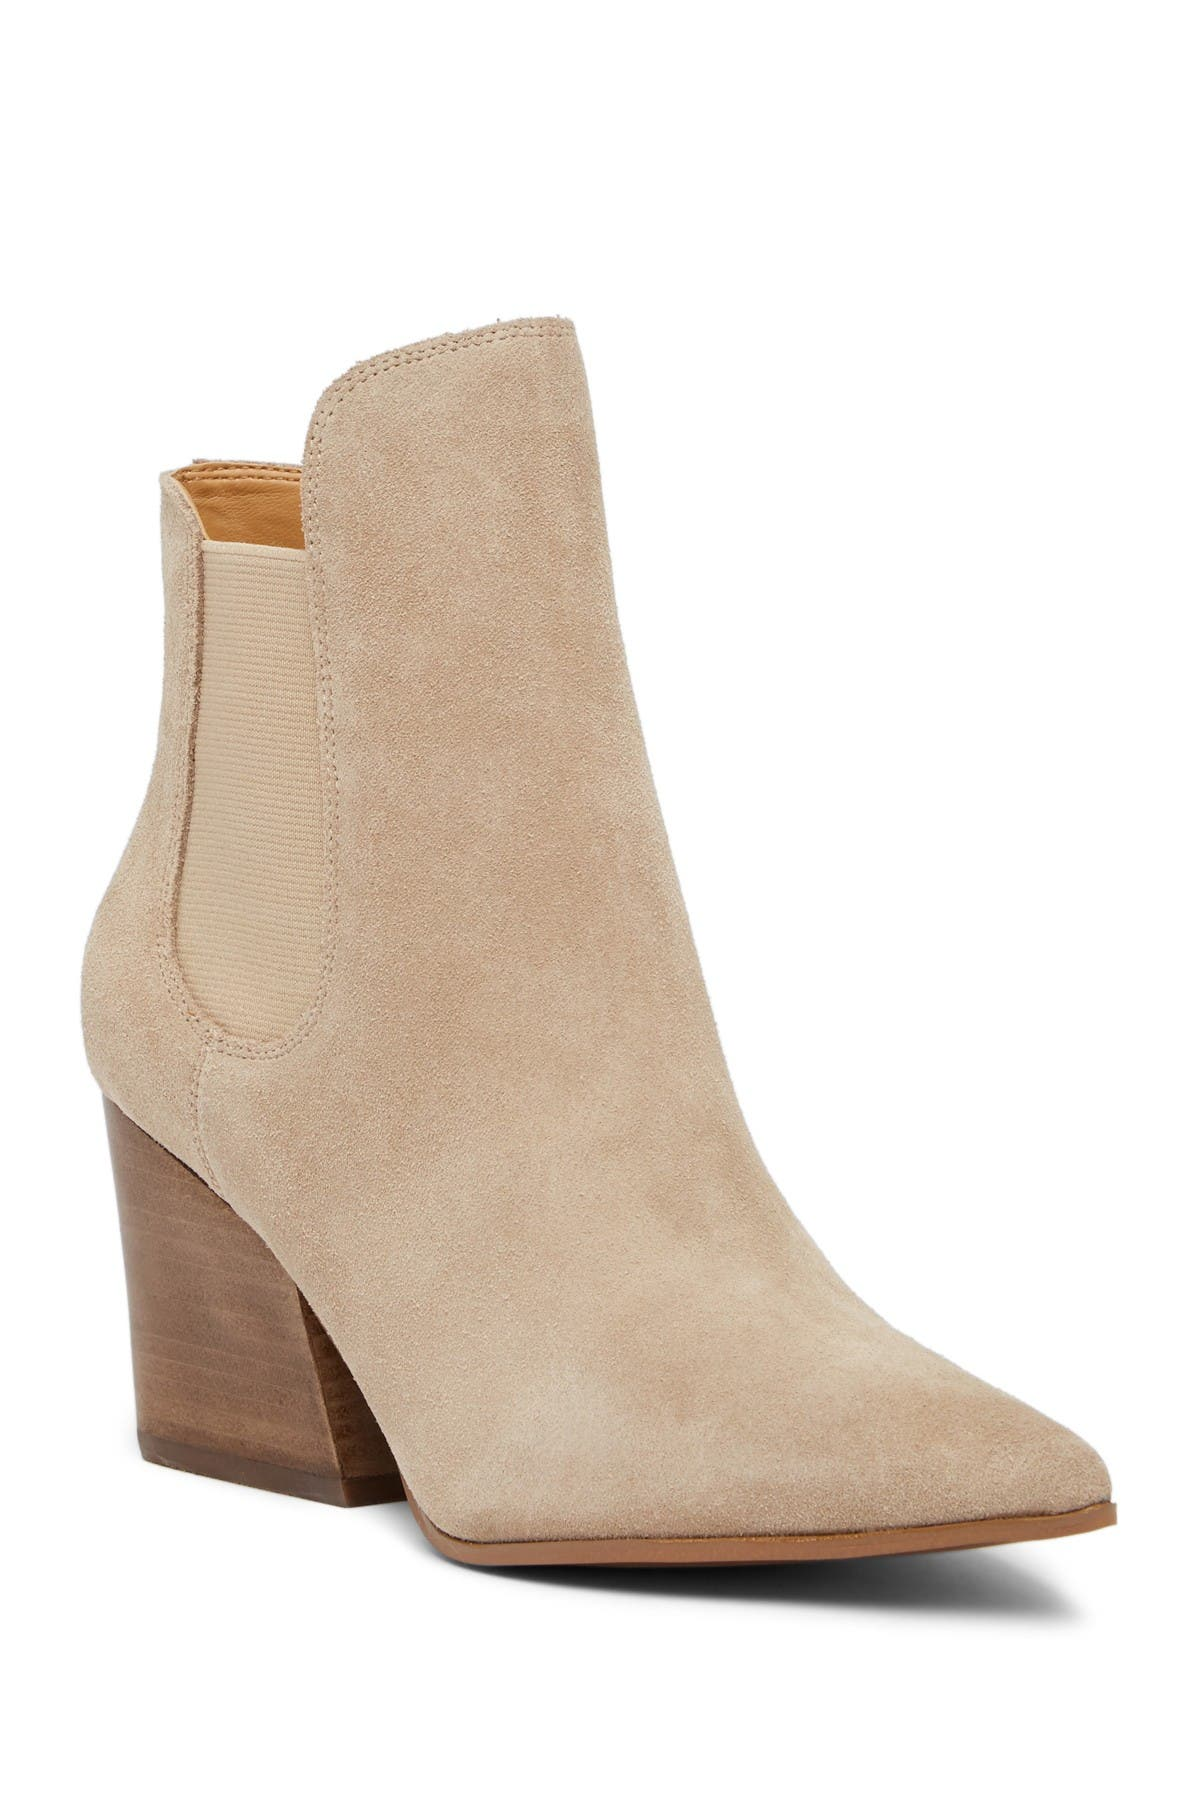 Image of KENDALL AND KYLIE Finley Chelsea Boot